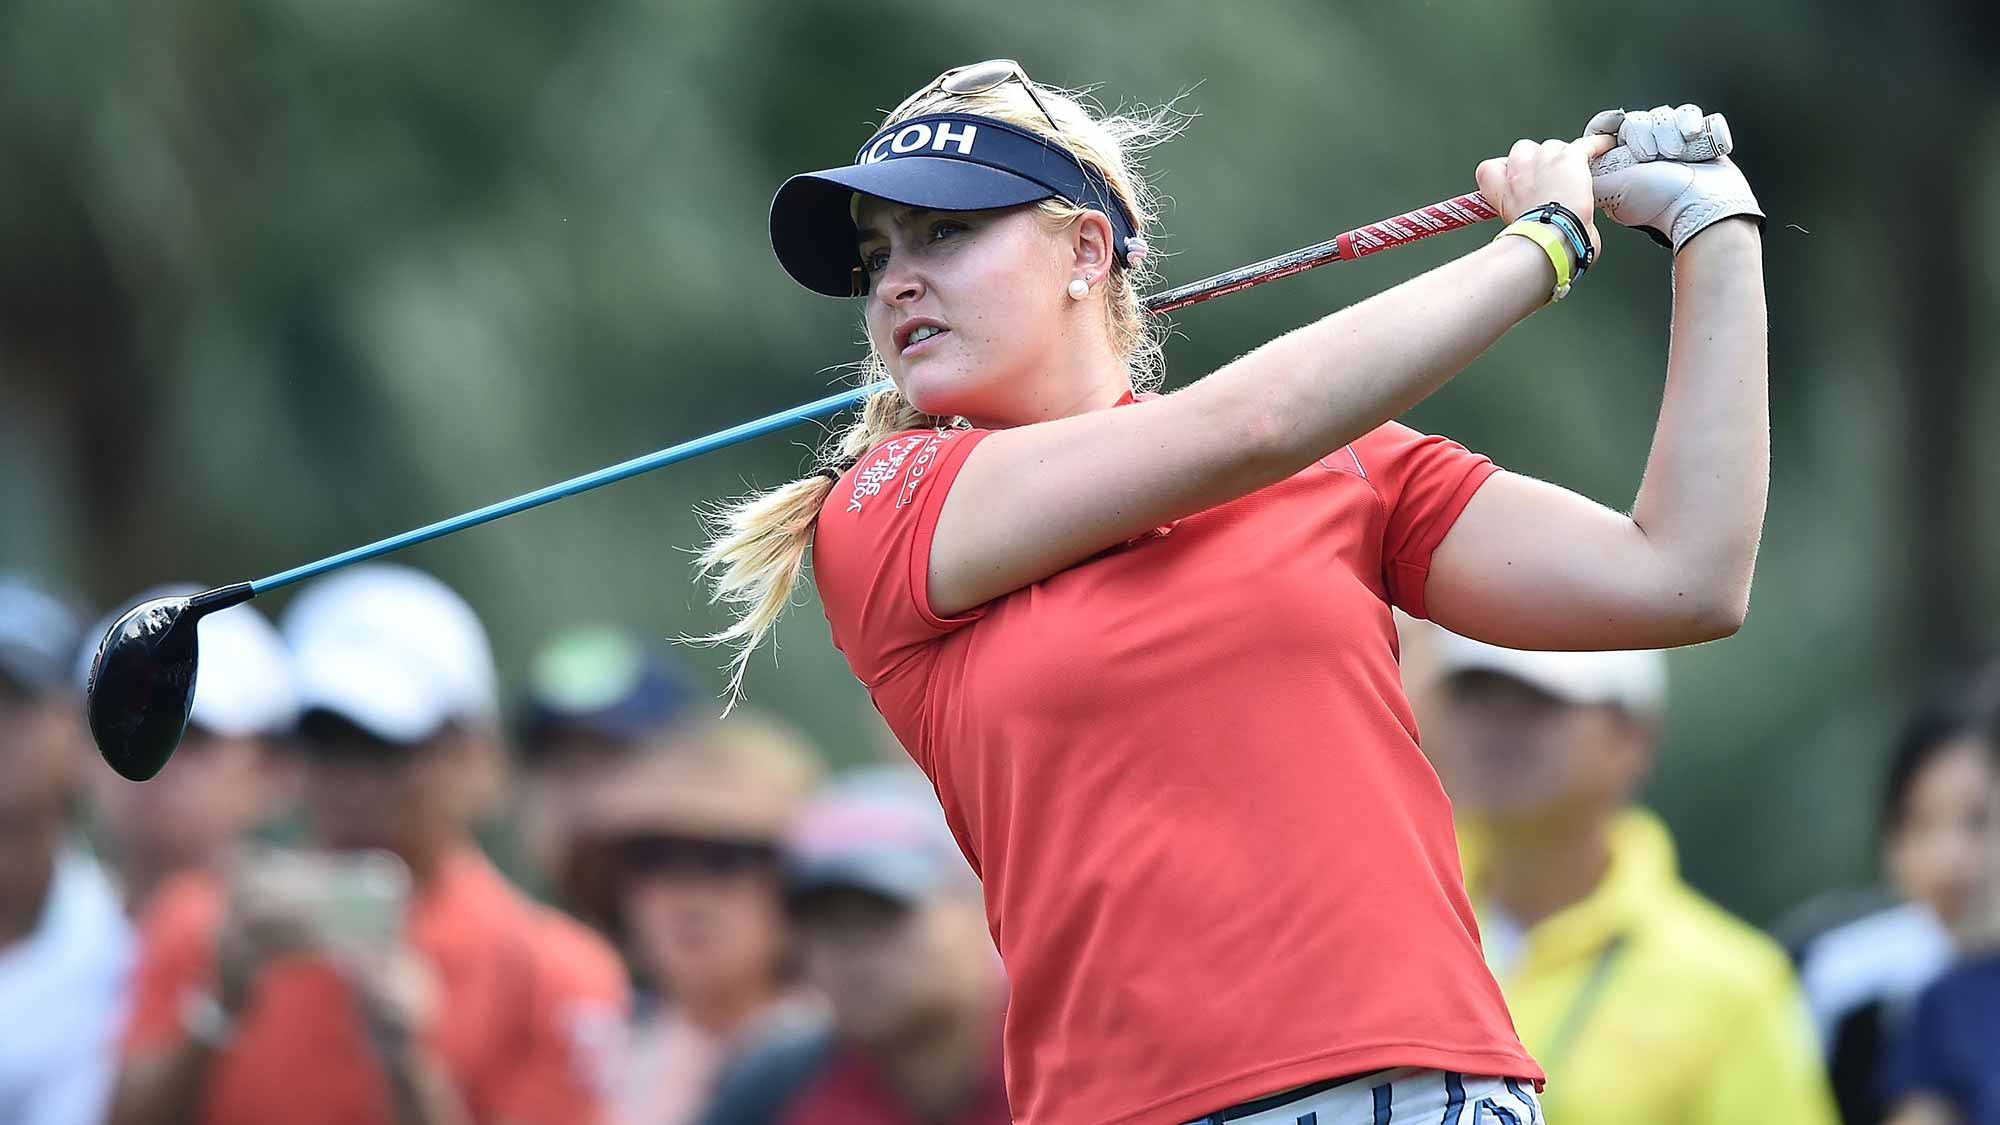 Charley Hull of United Kingdom plays a shot during the final round of 2015 Fubon LPGA Taiwan Championship on October 25, 2015 in Miramar Resort & Country Club